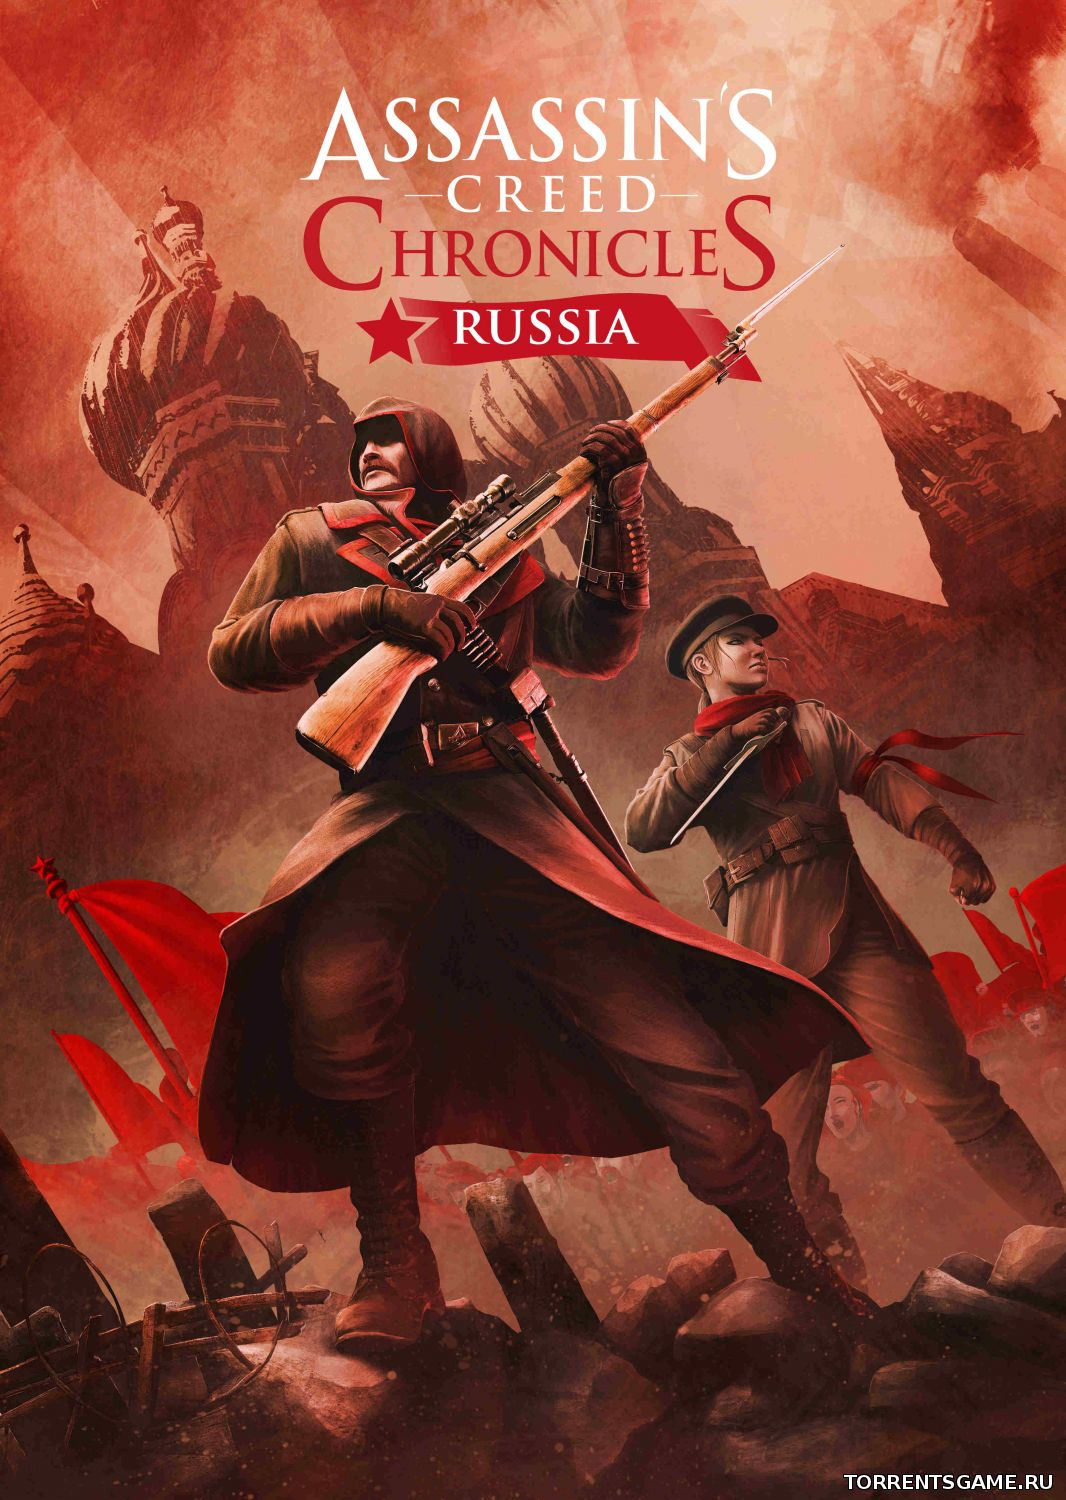 http://torrentsgame.ru/load/games/action/assassins_creed_chronicles_russia/2-1-0-78